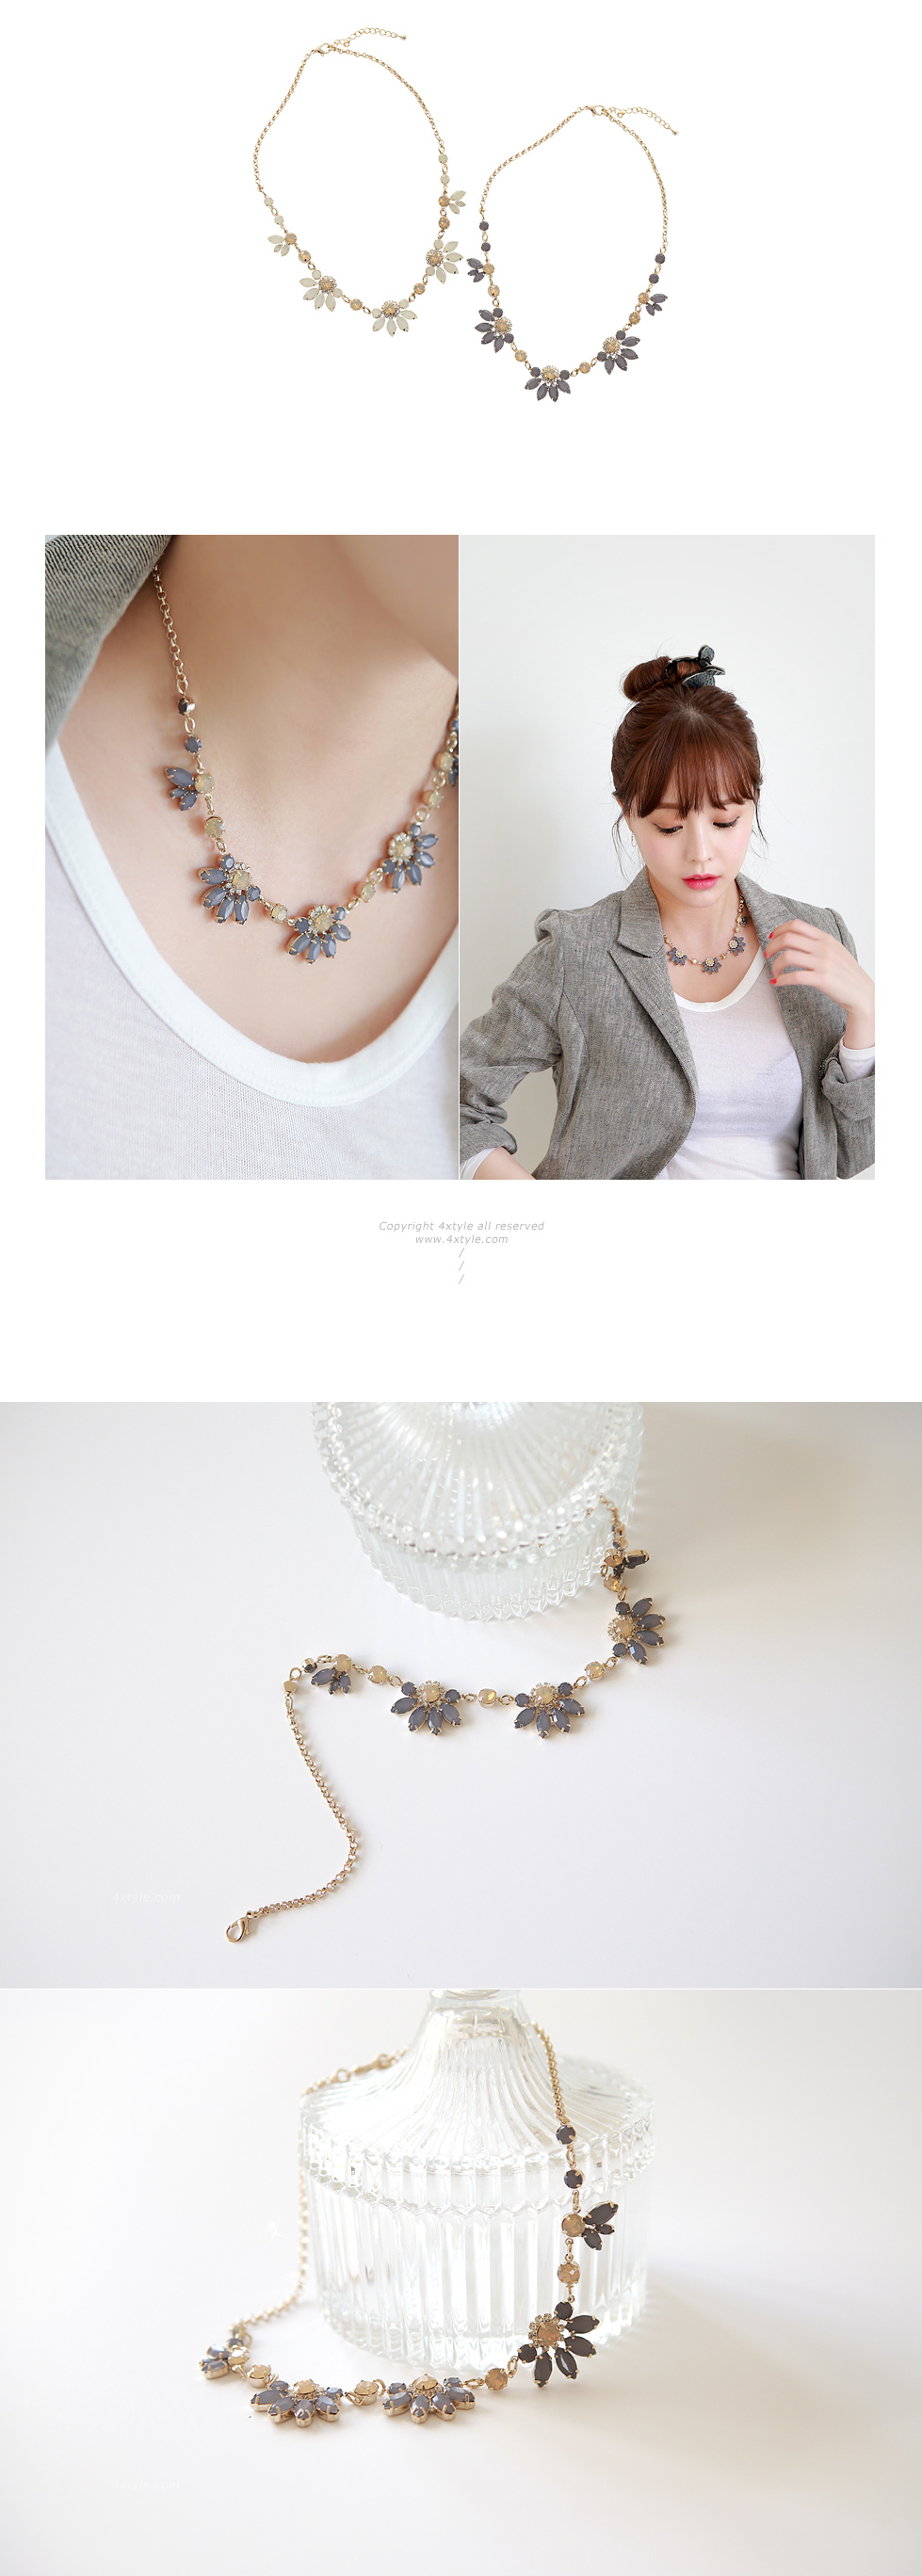 [ 4xtyle ] Porreta Necklace, 2 Colors